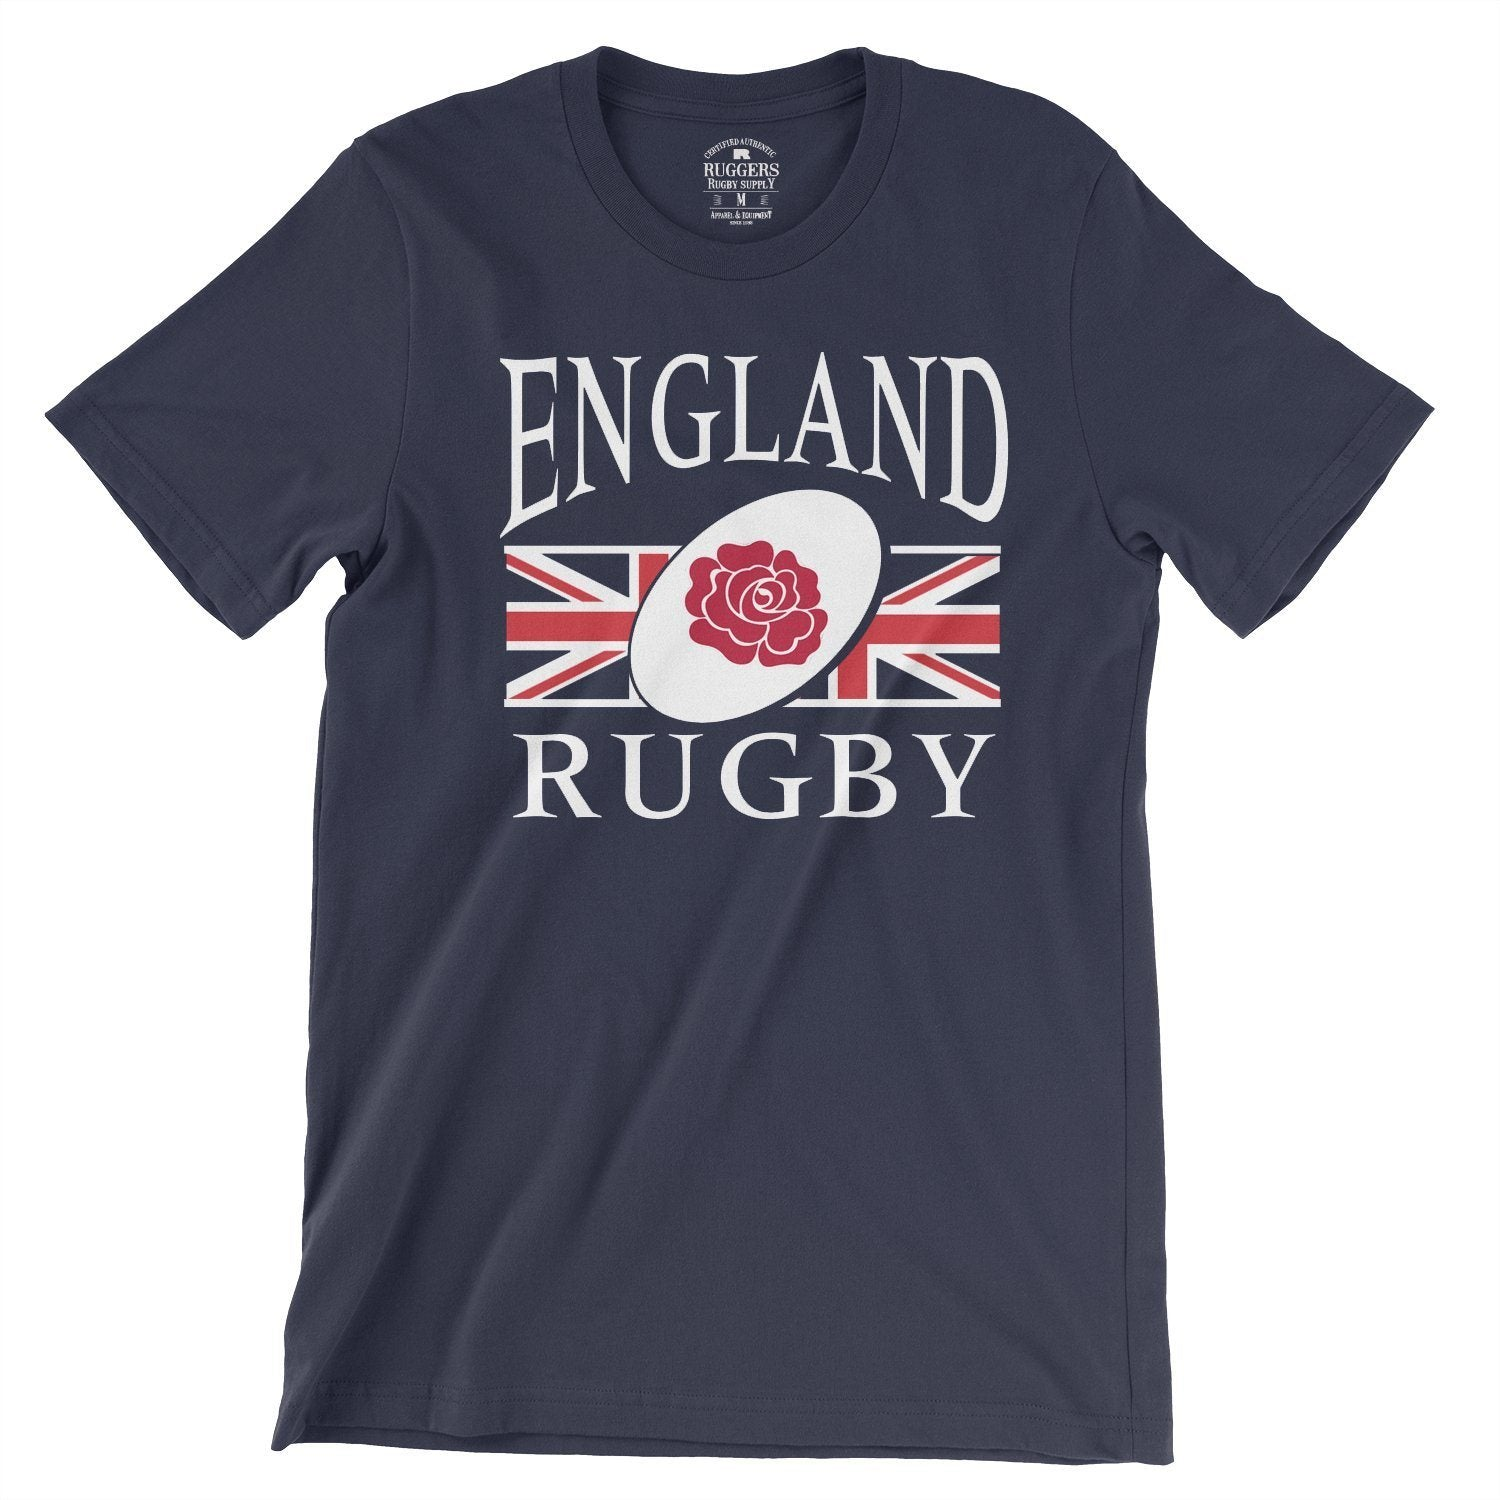 Graphic Tees - England Rugby S/S Tee